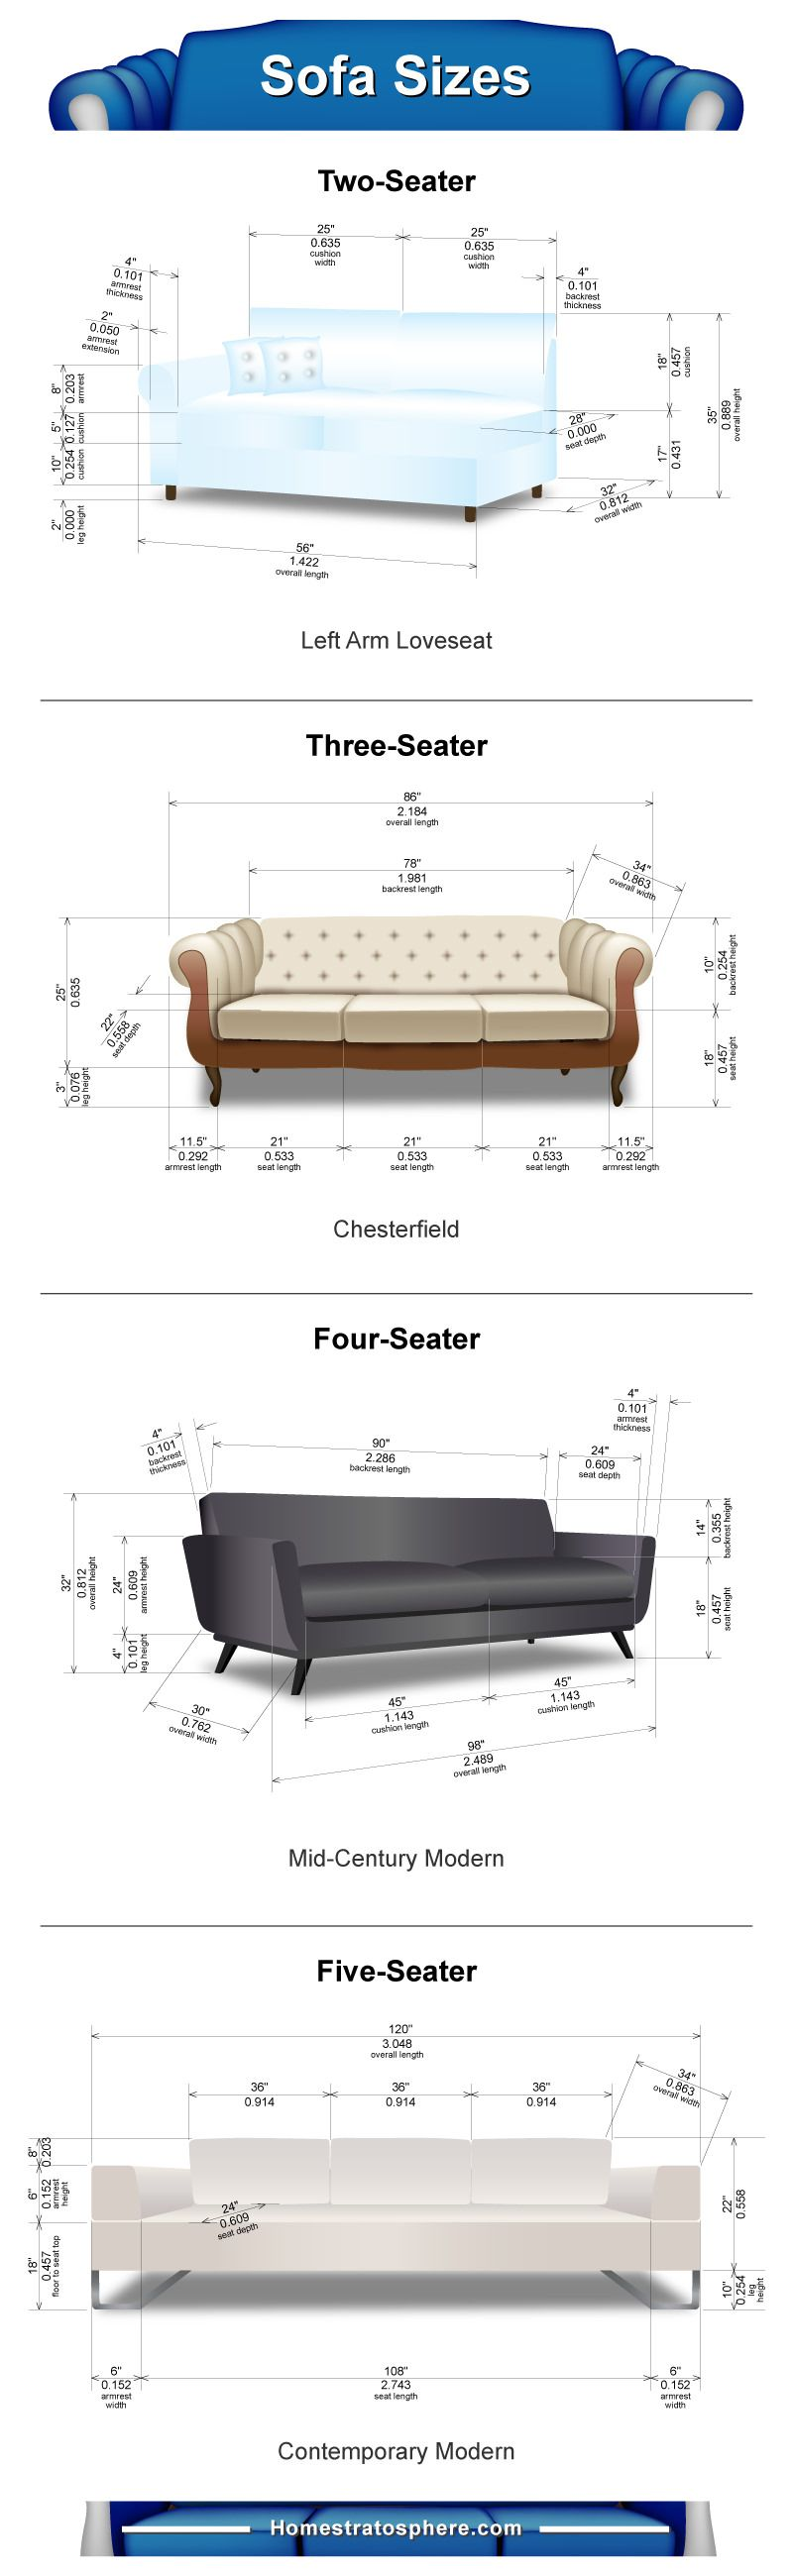 25 Styles Of Sofas Couches Explained With Photos Sectional Living Room Sets Living Room Sofa Victorian Sofa